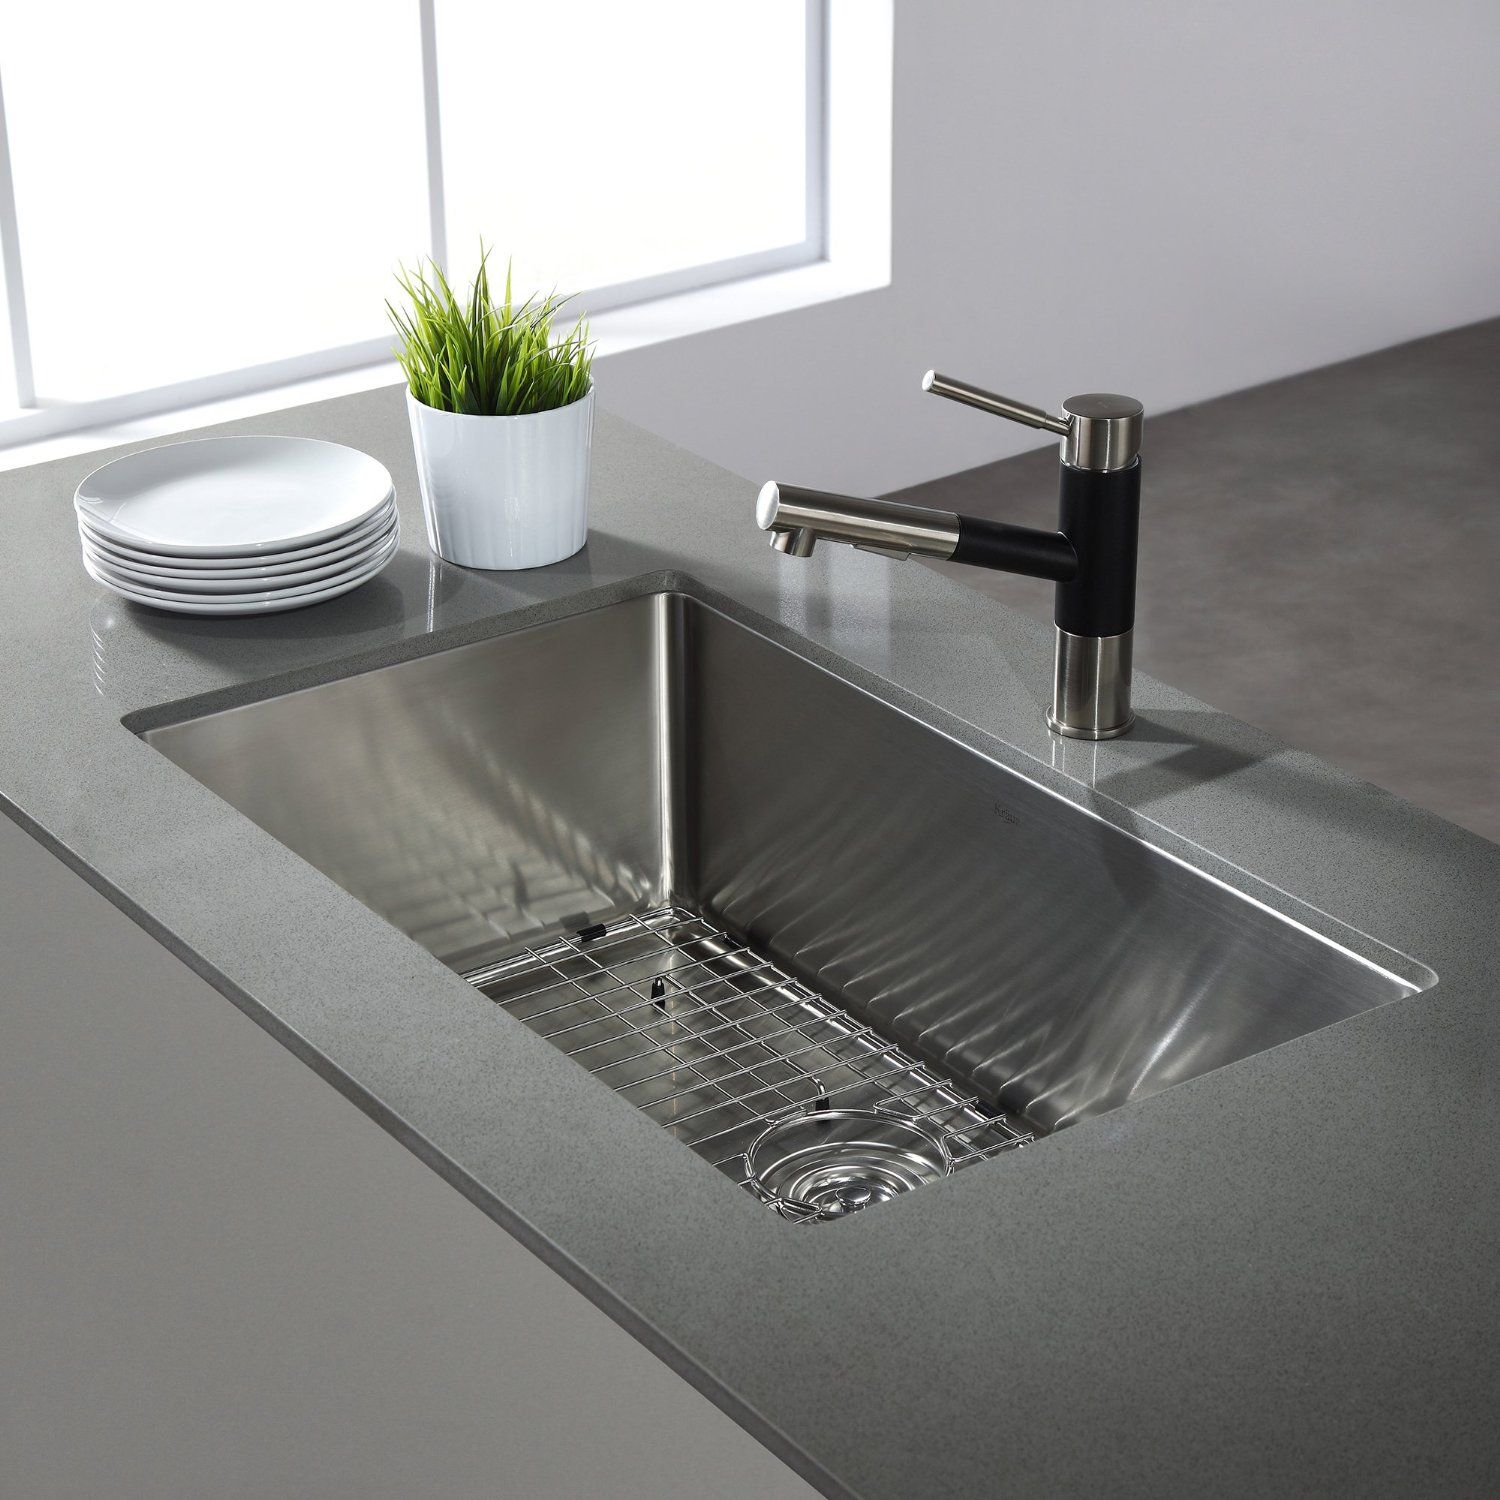 Top 10 Best Stainless Steel Single Bowl Kitchen Sinks in